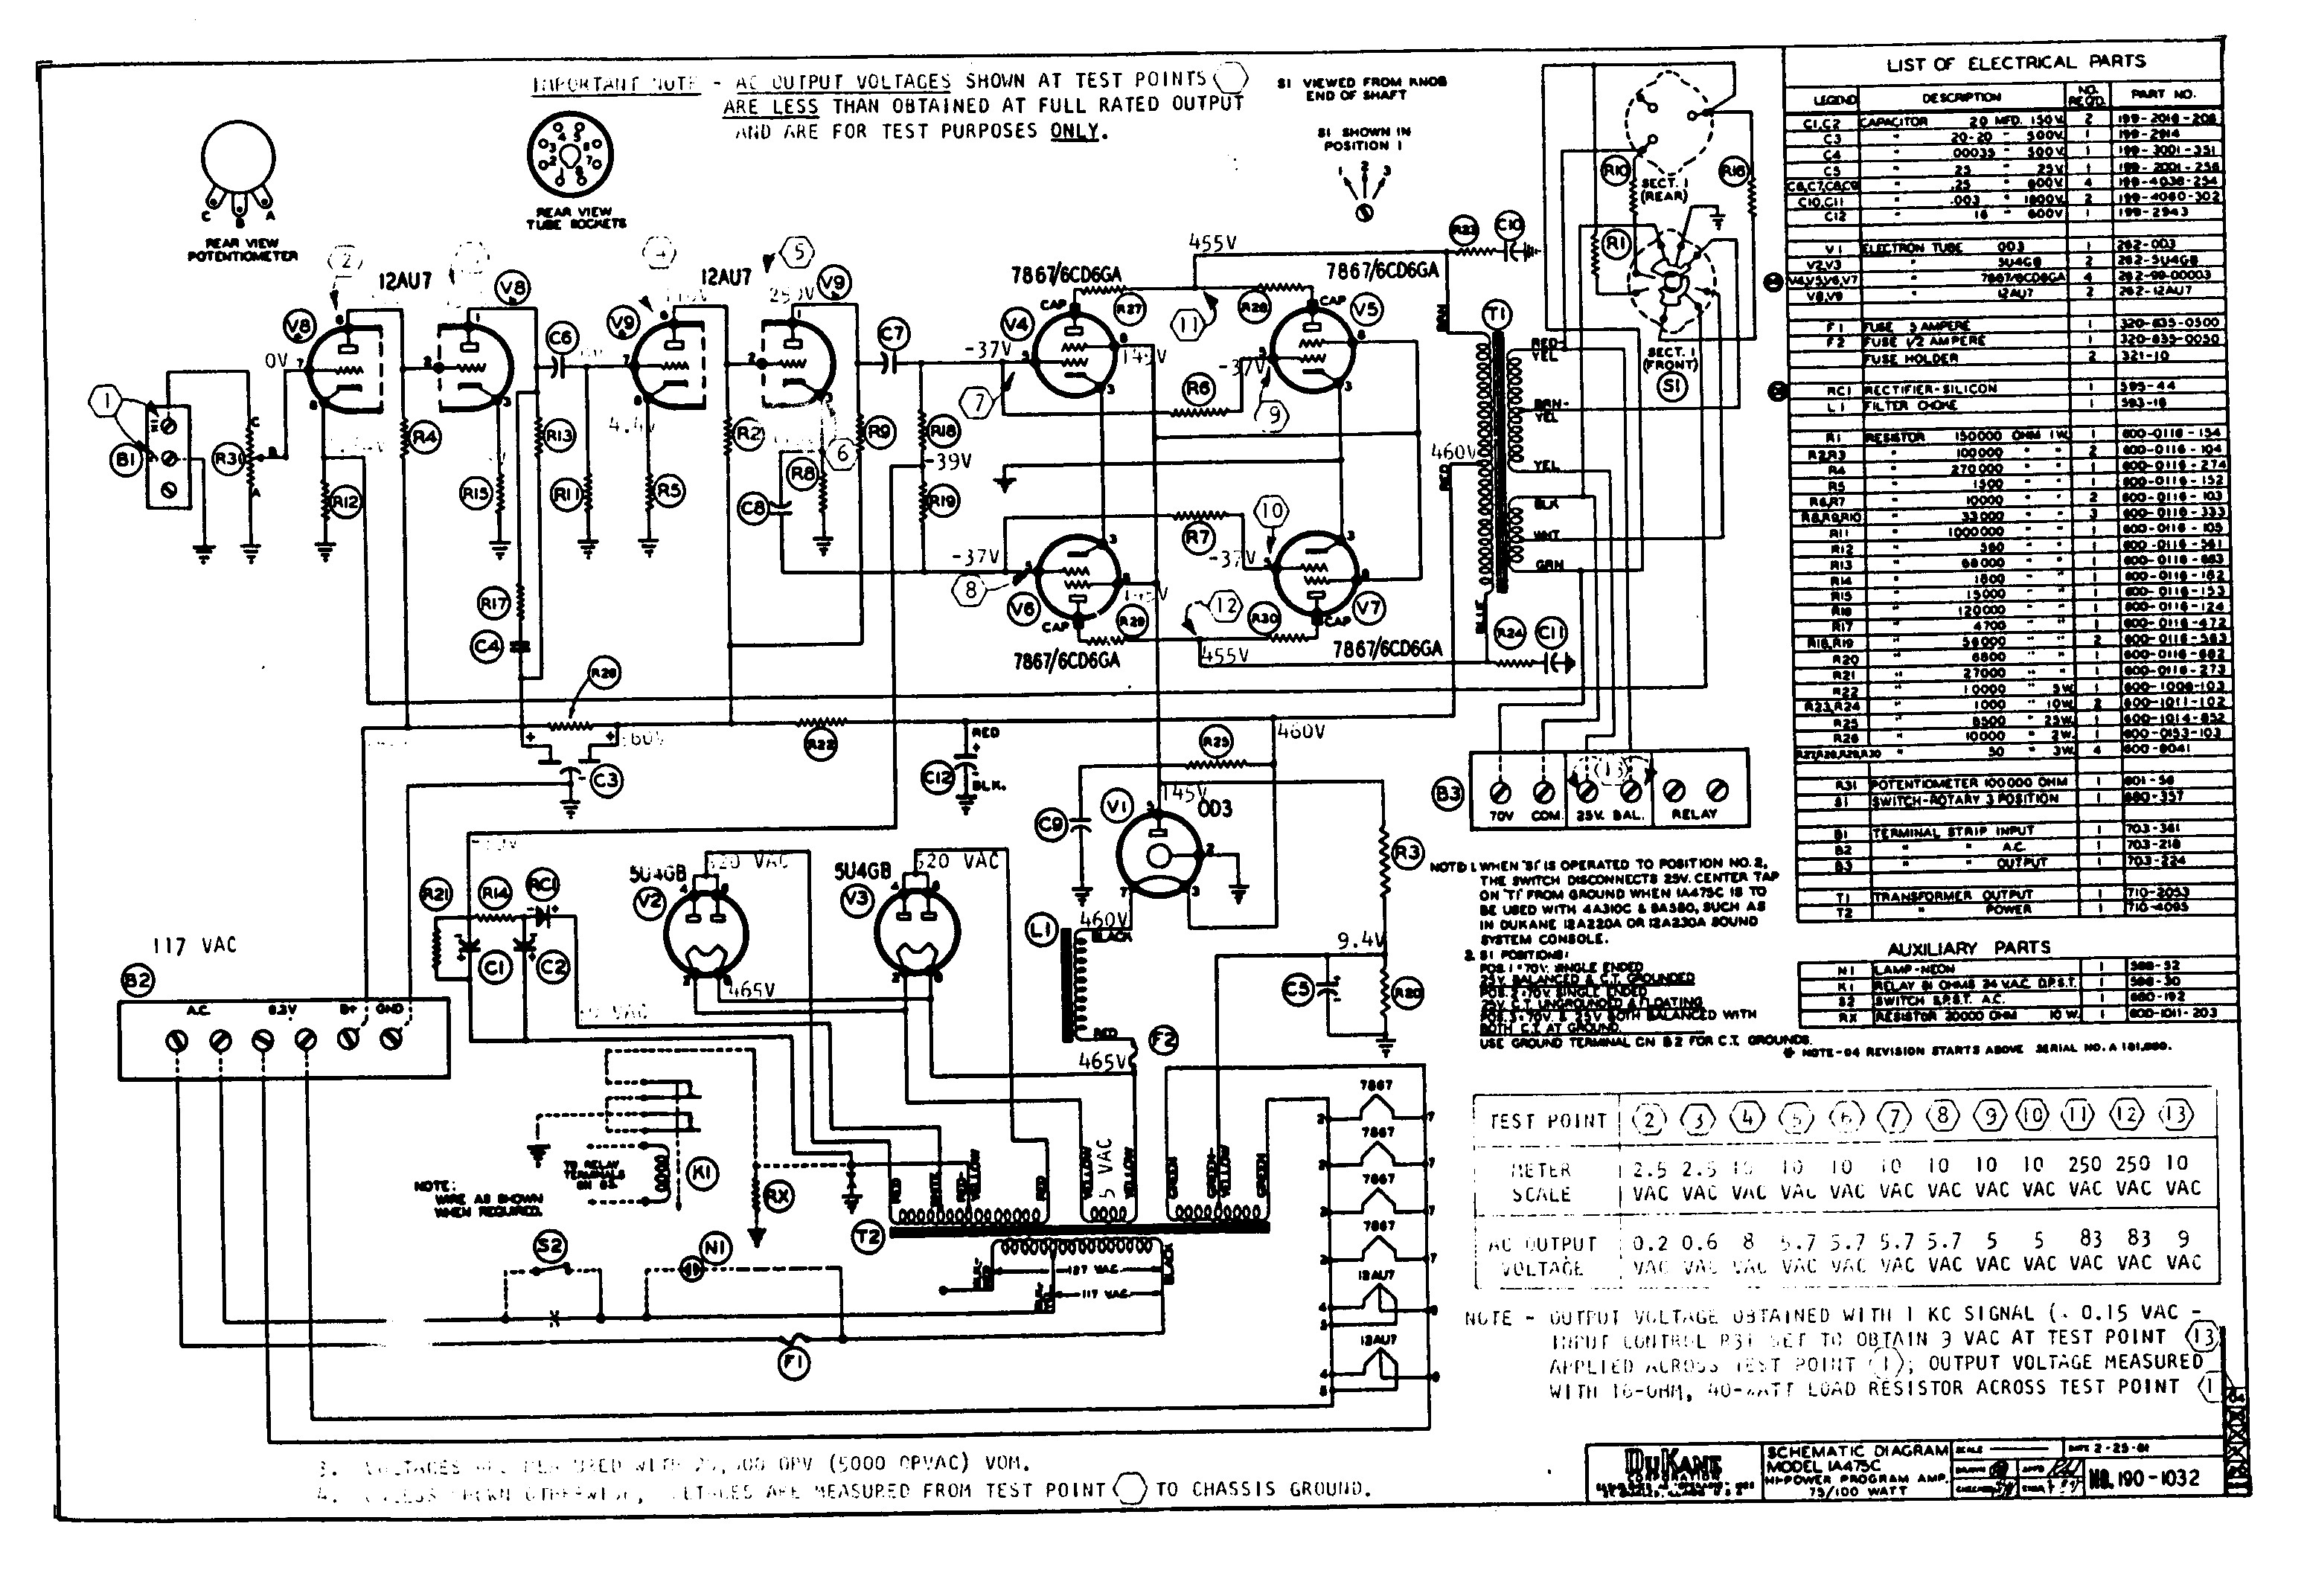 Manual Call Point Wiring Diagram